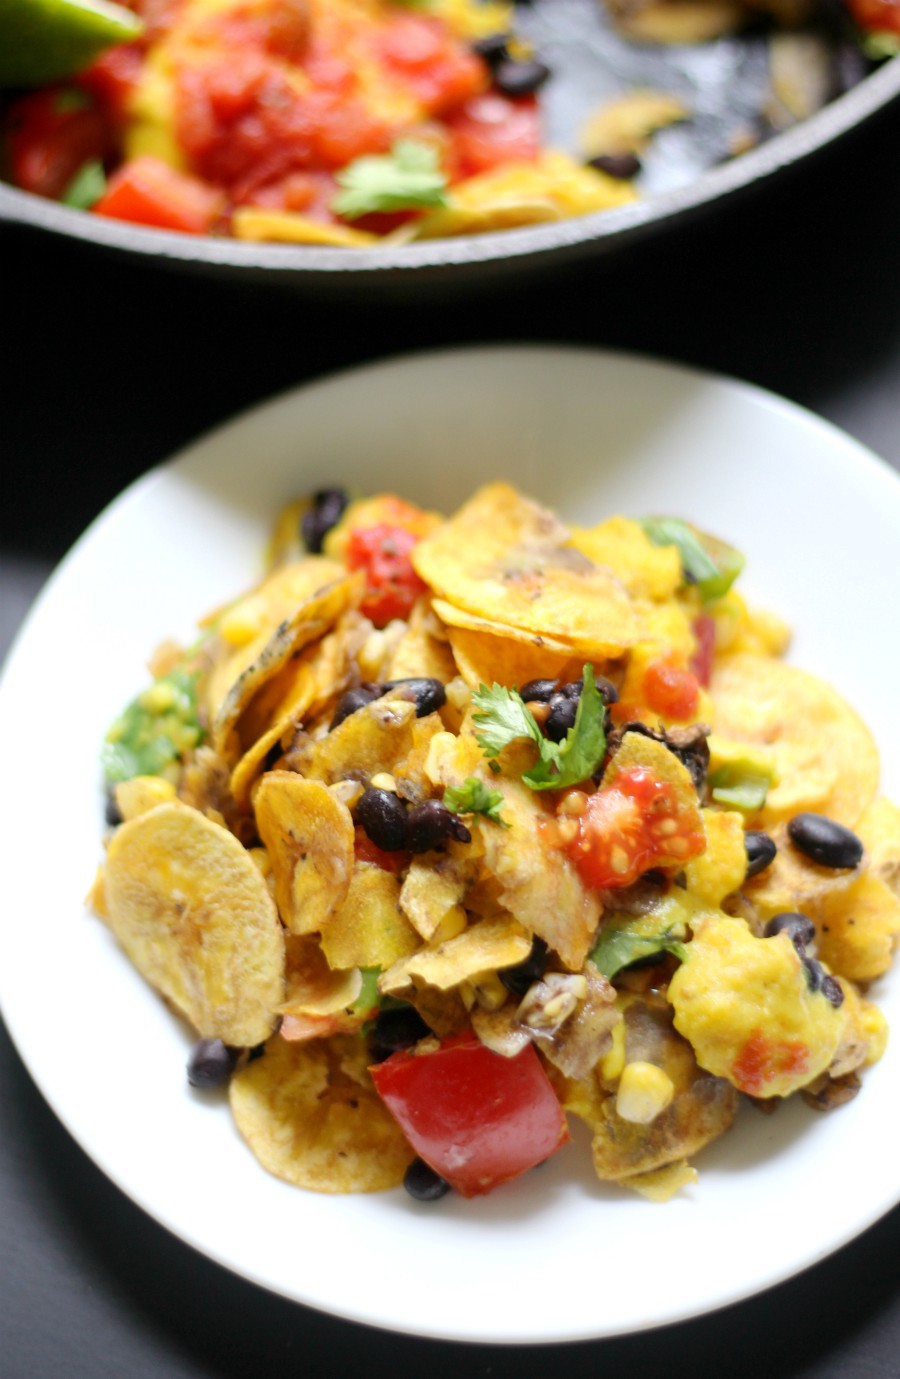 Gluten-Free Skillet Plantain Nachos (Vegan, Grain-Free, Allergy-Free) | Strength and Sunshine @RebeccaGF666 A delicious, messy, plant-based skillet of nachos! Gluten-Free Skillet Plantain Nachos that are vegan, grain-free, and top 8 allergy-free! Loaded with veggies and plantain chips, topped with salsa and an easy homemade vegan cheese sauce recipe, these nachos make for a fun Mexican meal any night of the week! #nachos #glutenfree #vegan #plantains #grainfree #strengthandsunshine